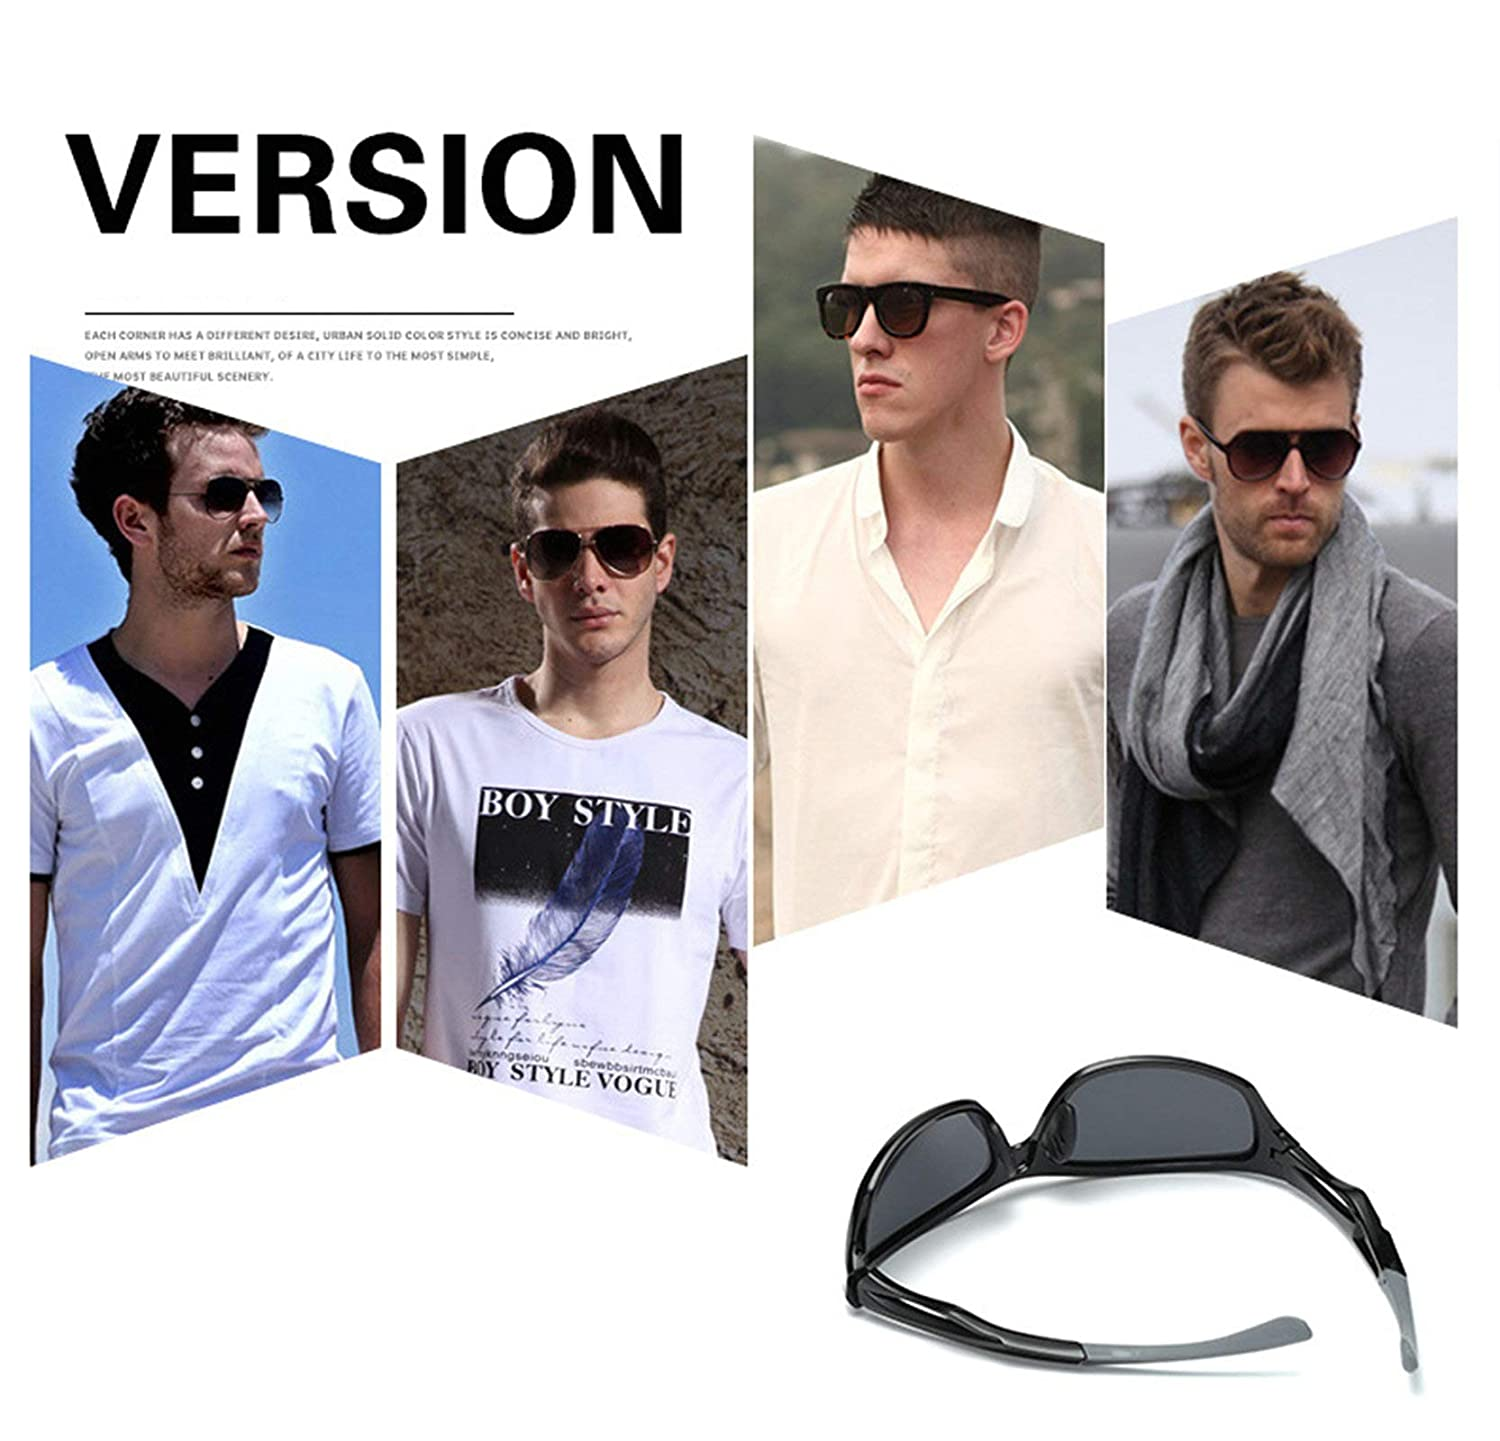 69ad4a8ec Amazon.com: Aooaz Sunglasses Men Sunglasses Outdoor Sport Riding Glasses  Night Vision Glasses Goggles Black Blue: Clothing